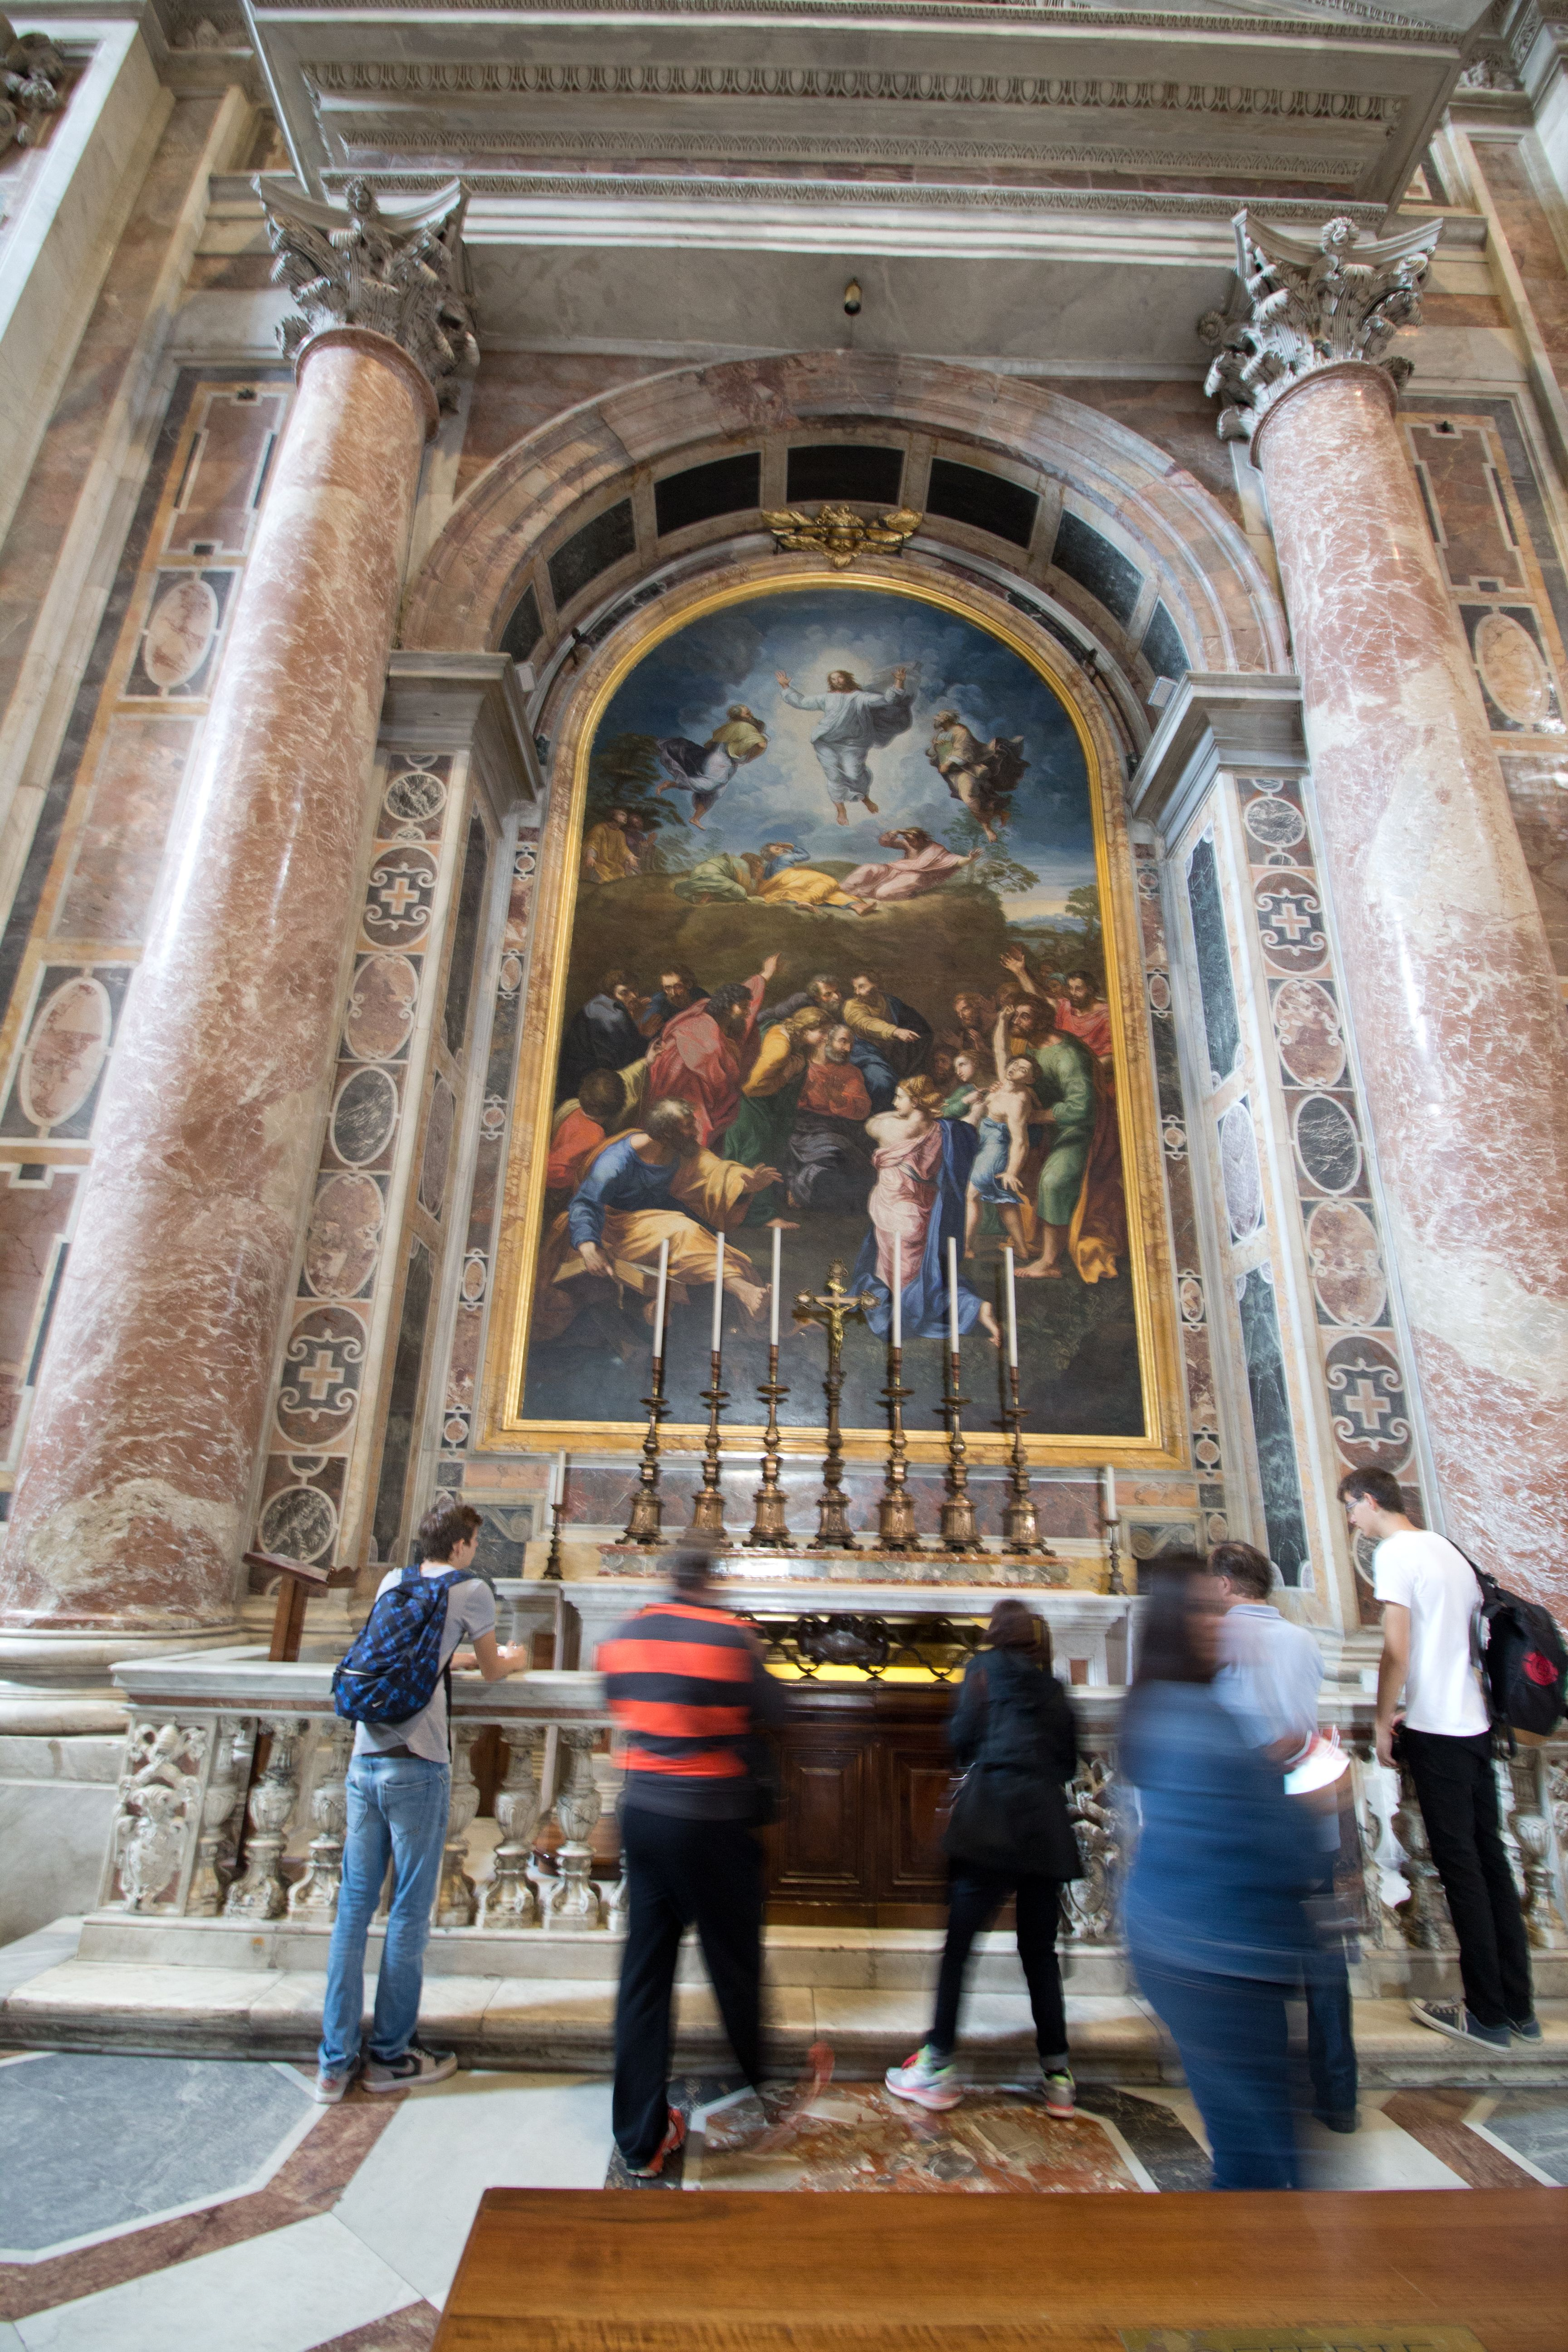 There are NO paintings in St. Peter's Basilica, only ...